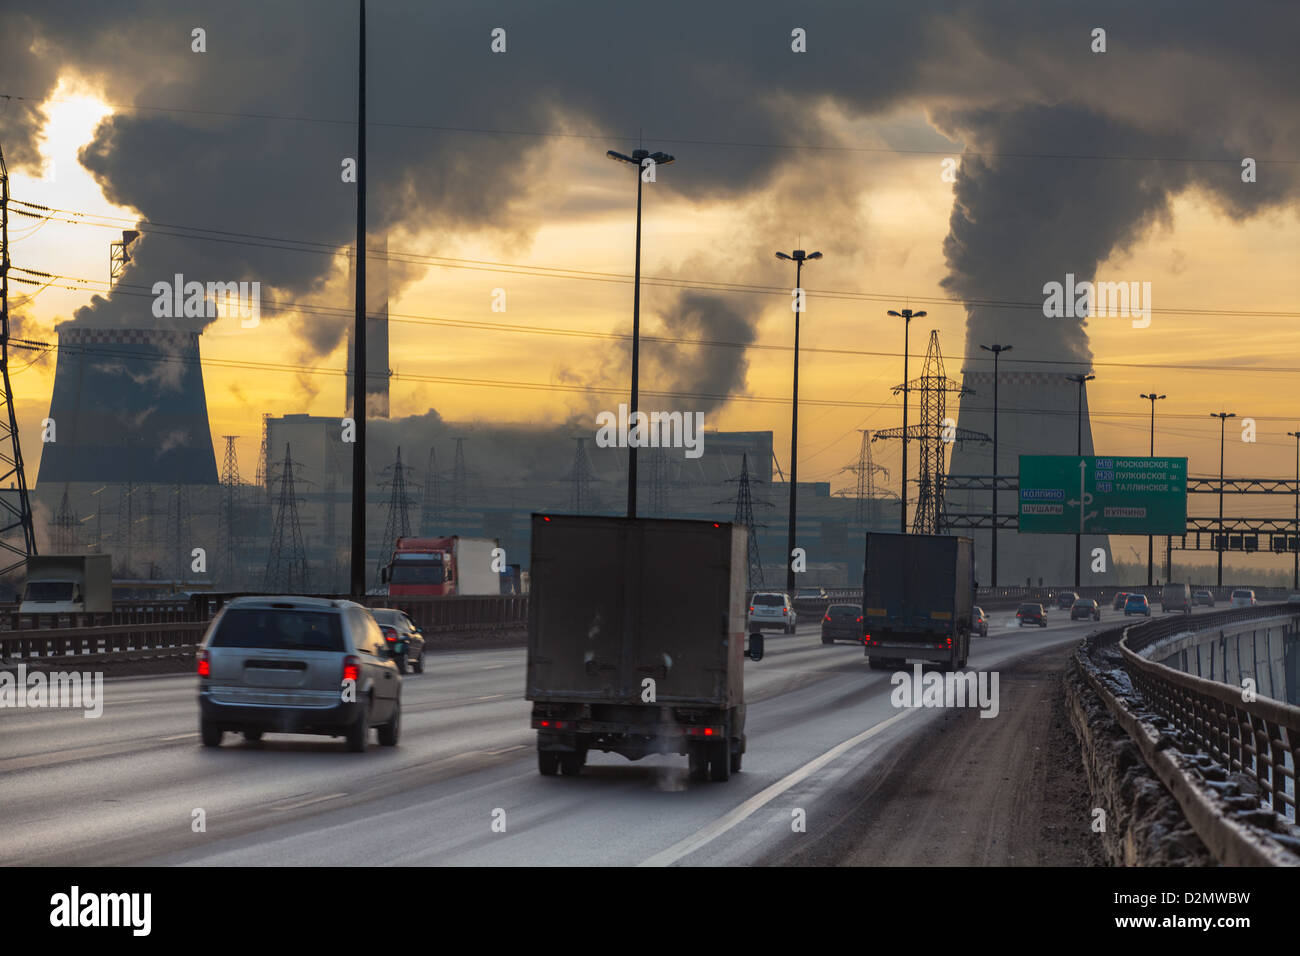 City ring way with cars and air pollution from heat electric generation plant in Saint-Petersburg, Russia - Stock Image